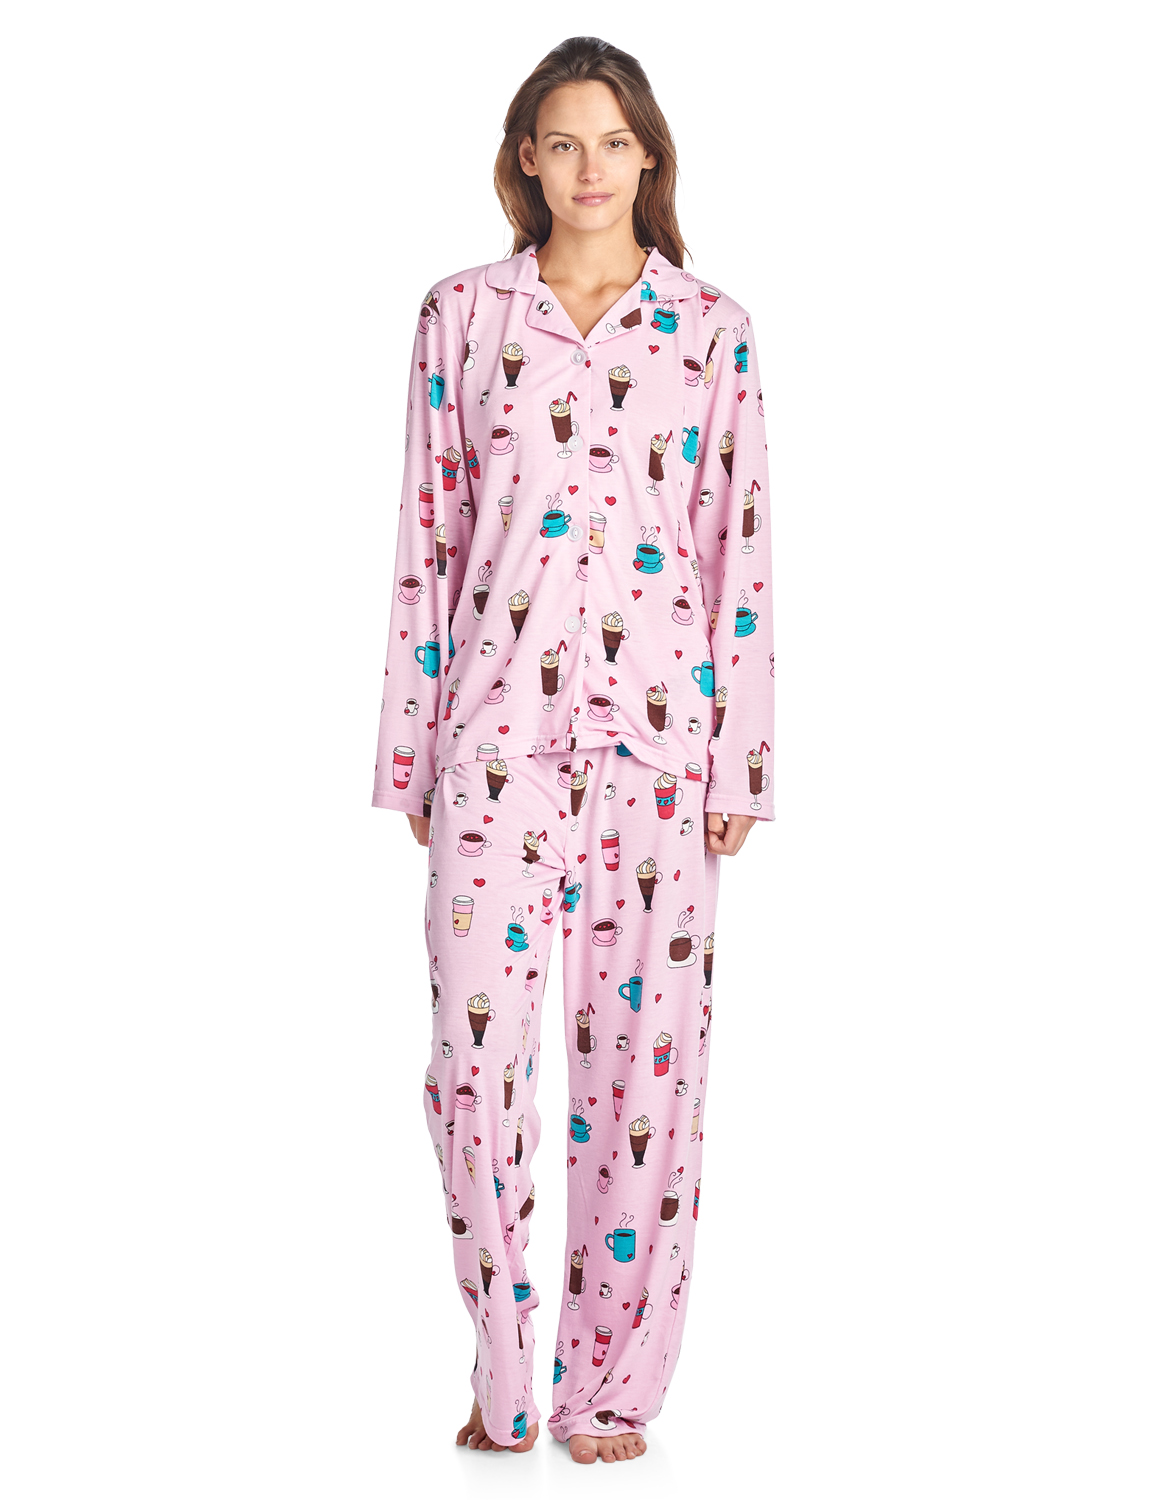 ebc8a3bf4 Bhpj By Bedhead Pajamas Women's Brushed Back Soft Knit Pajama Set - Lt.  Pink Lattes and Shakes